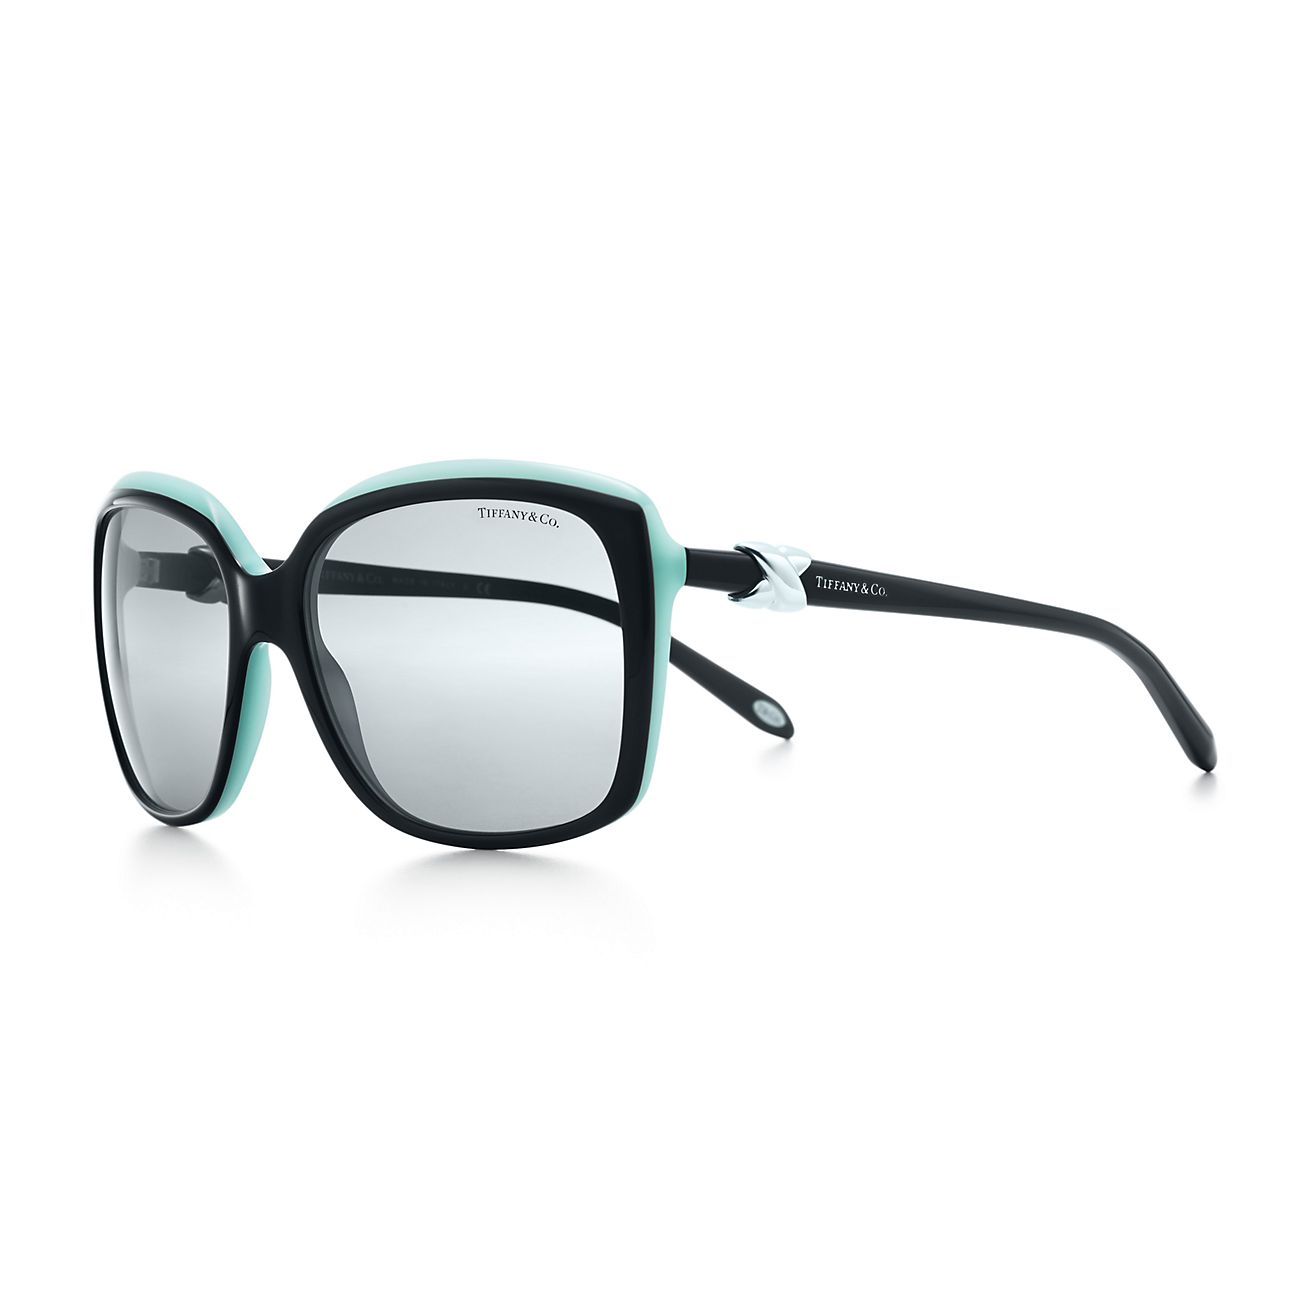 3de6b6fa6a Tiffany Twist Aviator Sunglasses In Tiffany Blue - Restaurant and ...